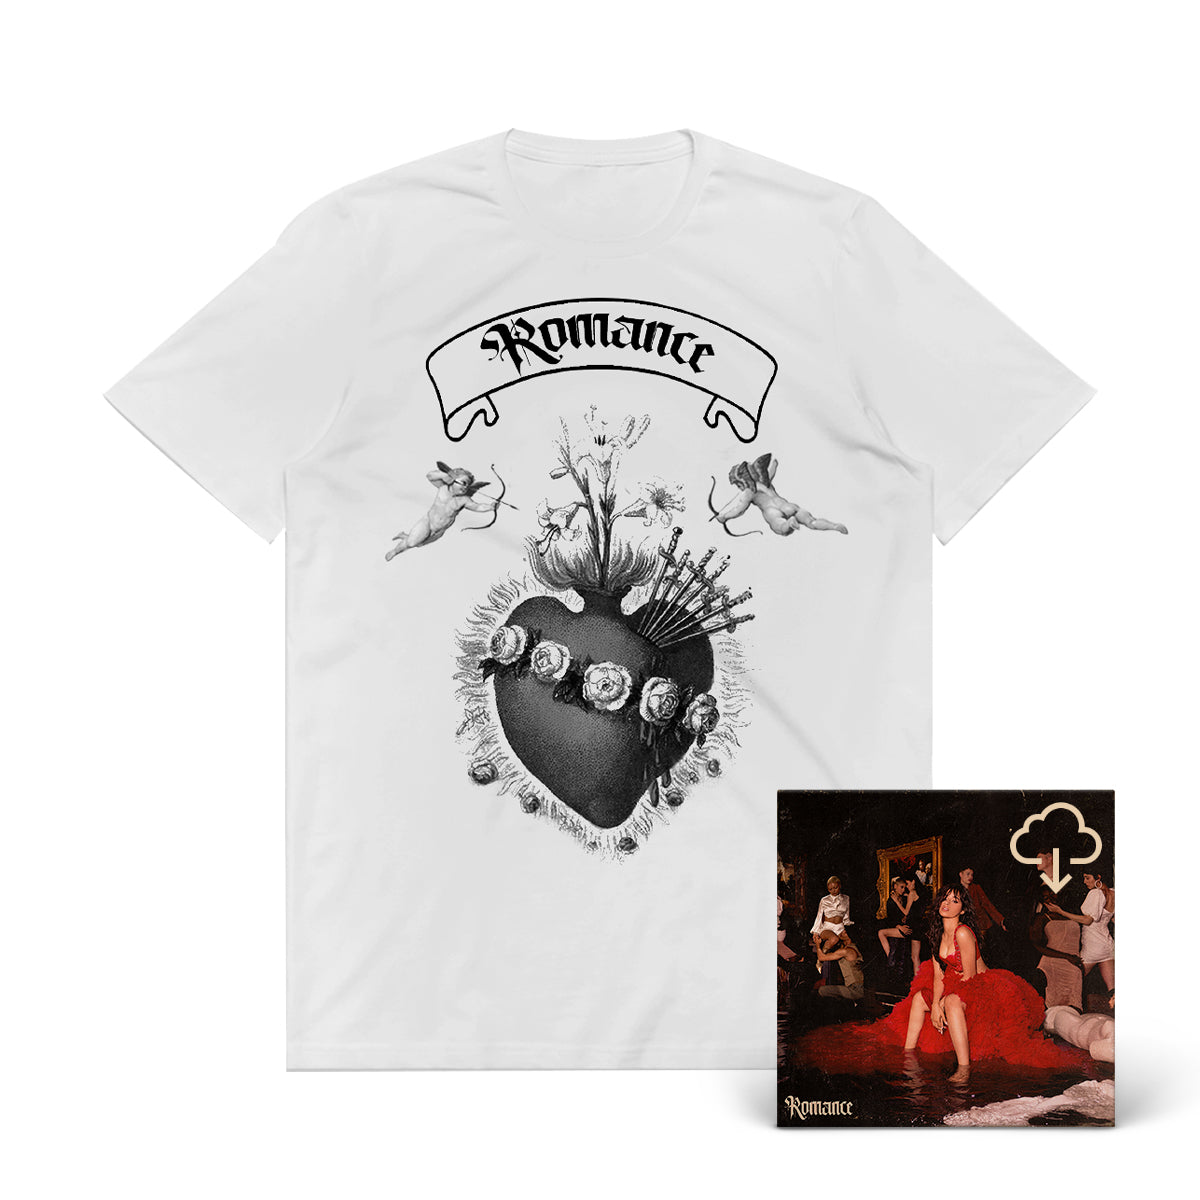 Romance T-Shirt + Digital Album Download